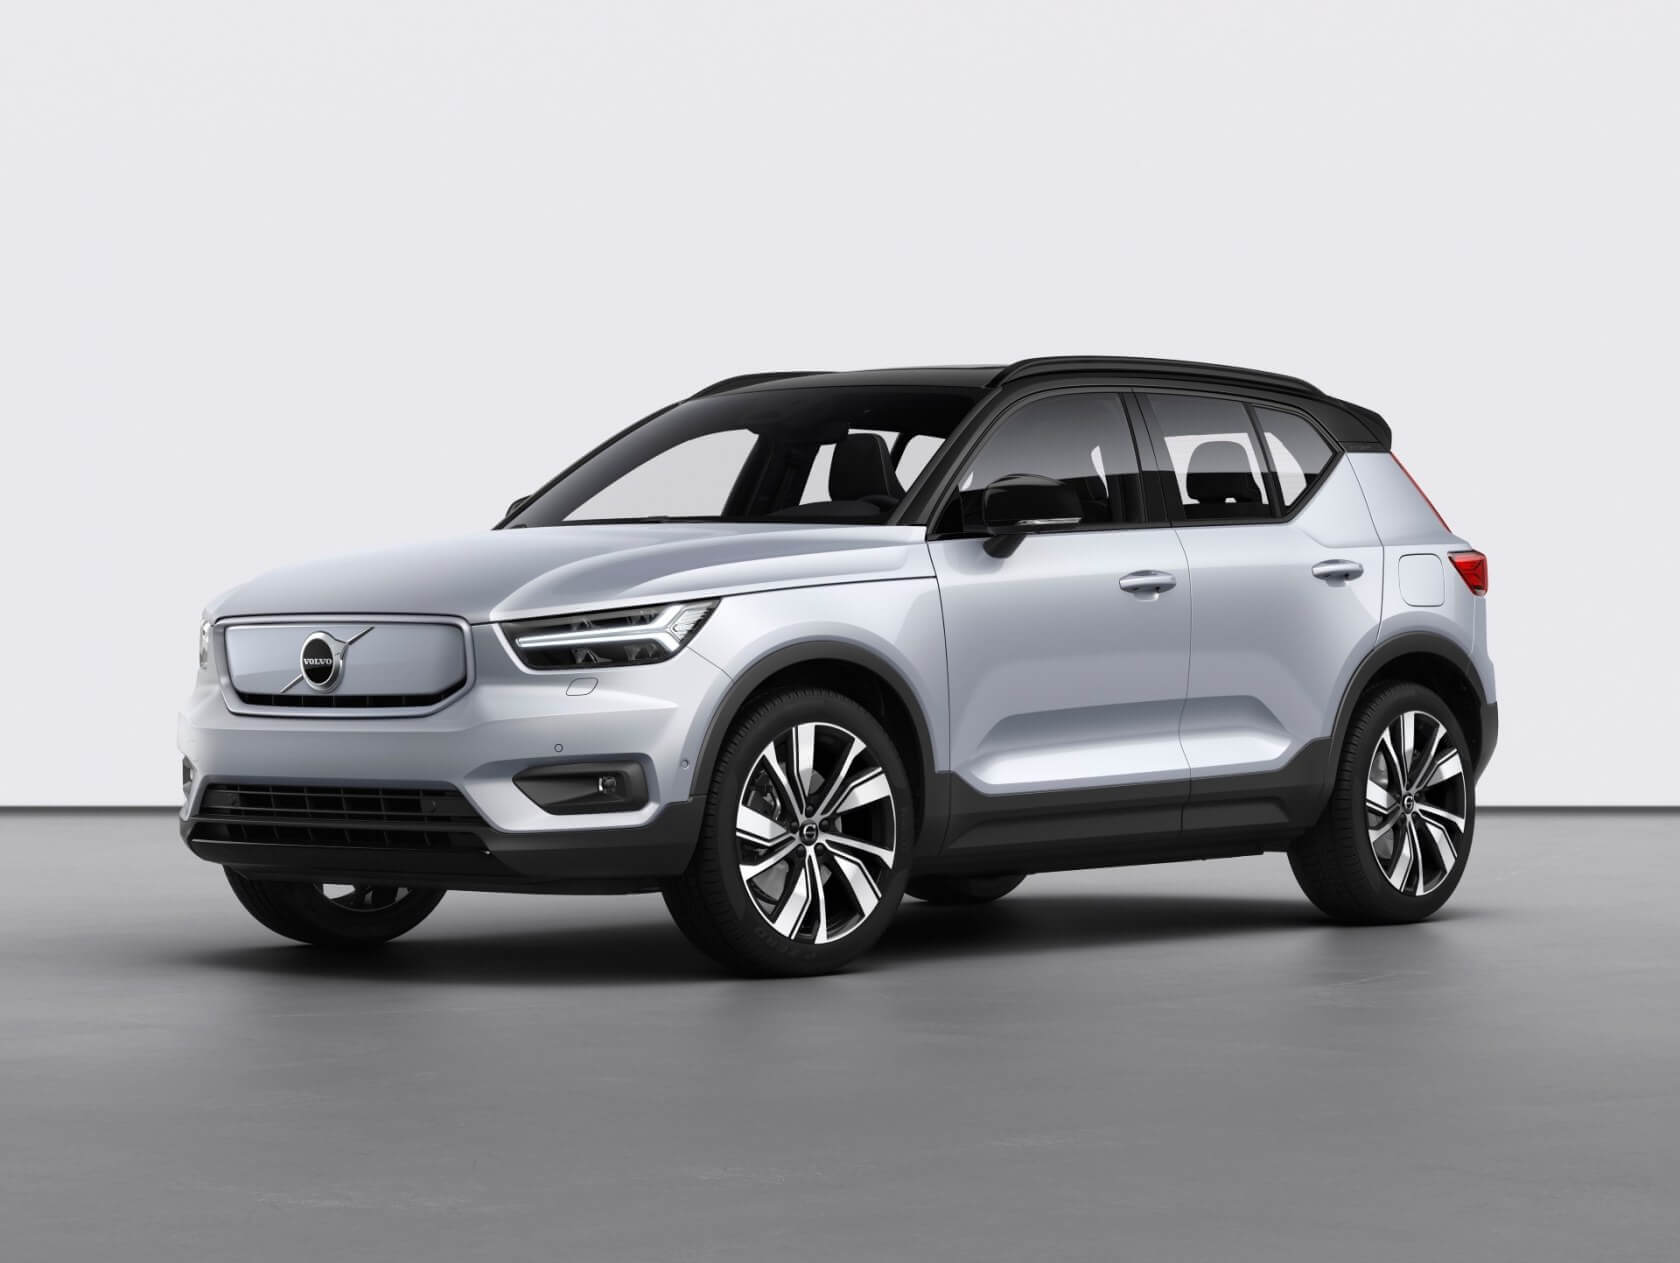 Volvo Launches All-Electric XC40 Recharge SUV: Could This Be The Tesla Killer?